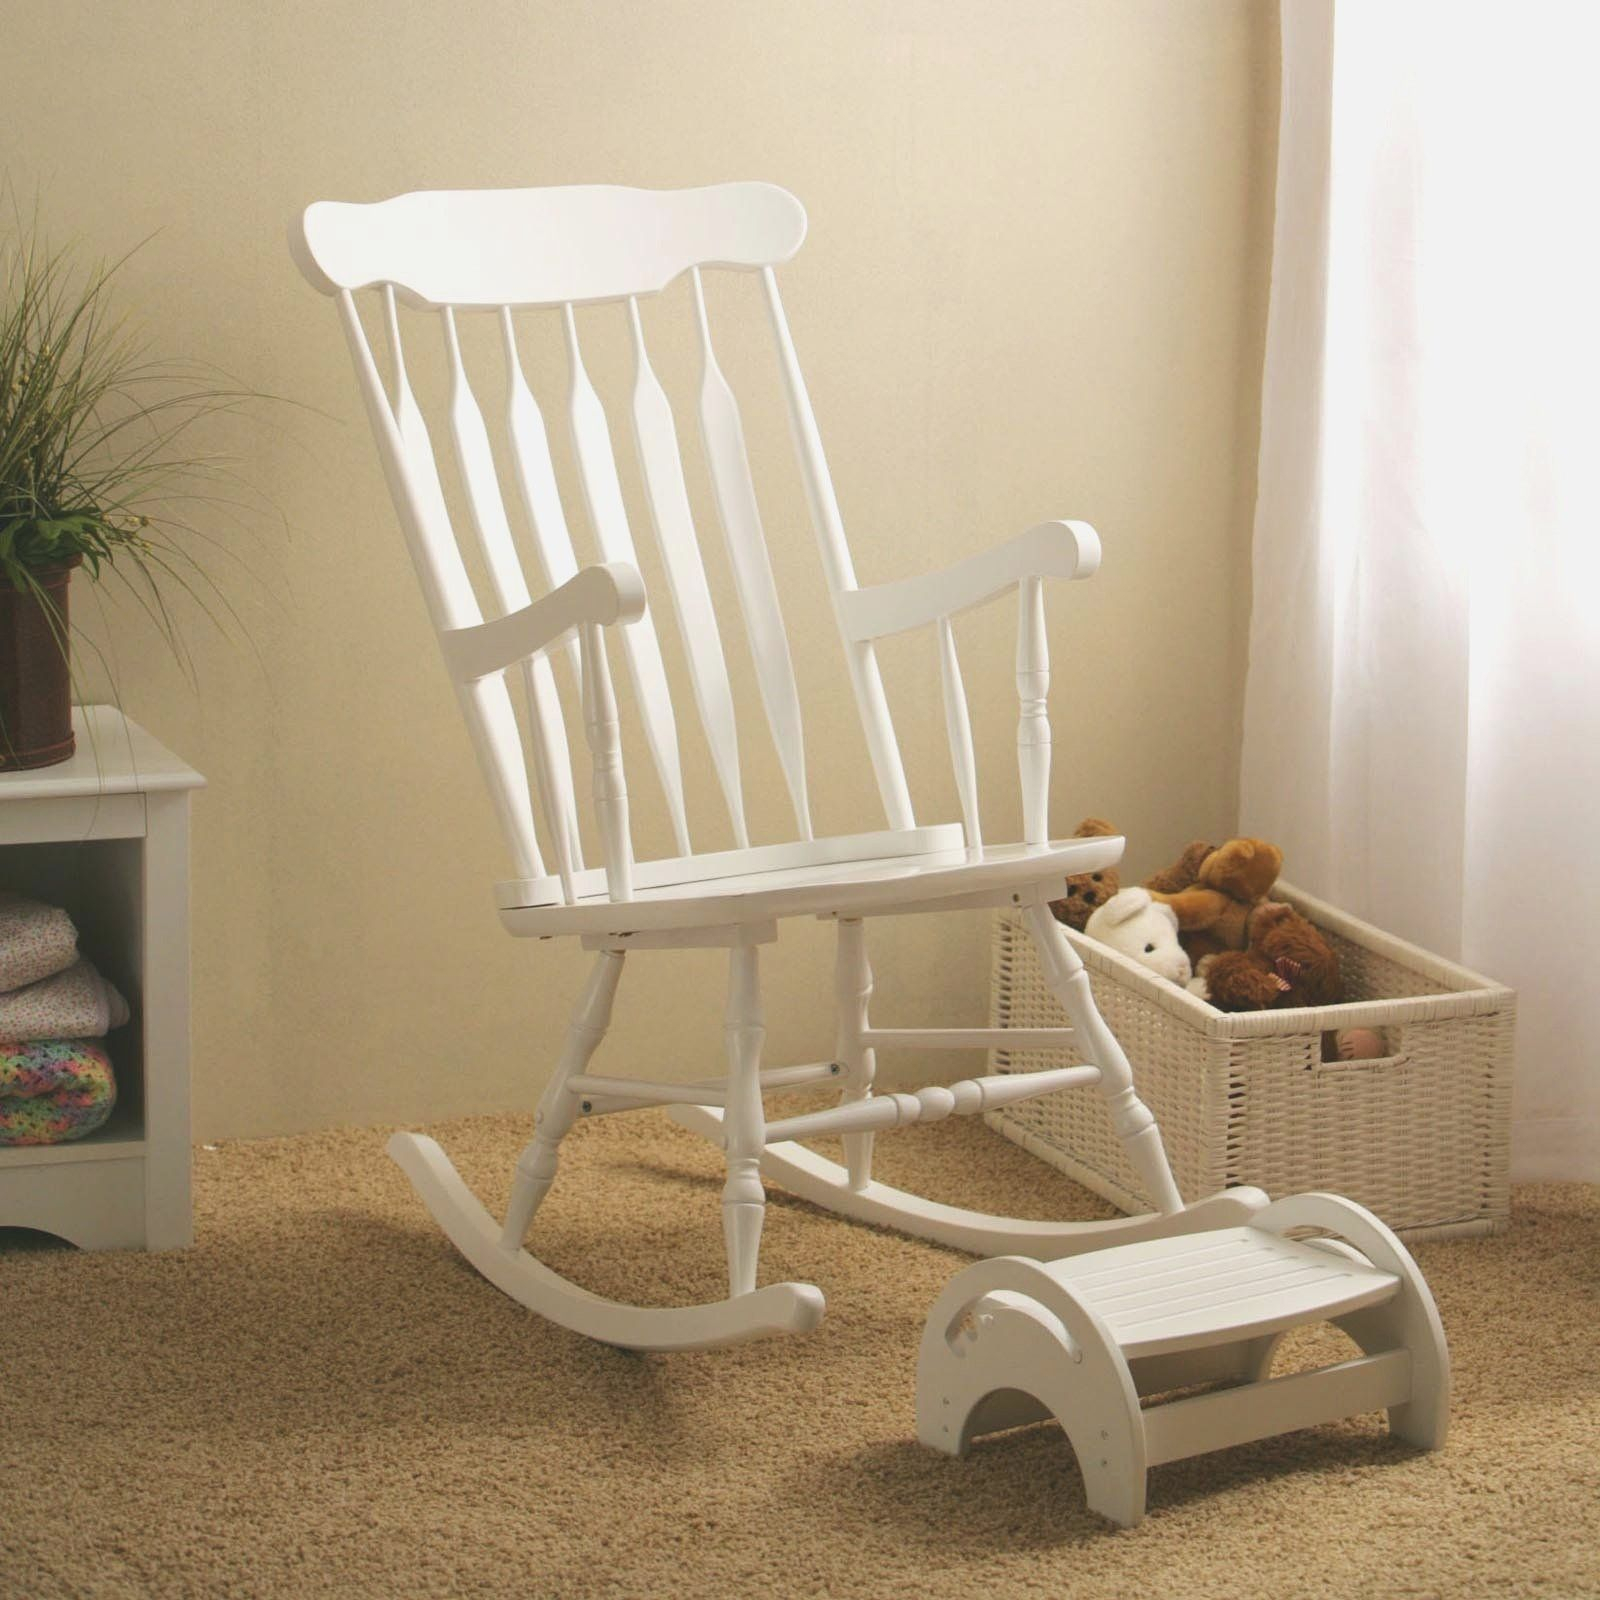 Inspiration about Types Of Rocking Chairs – All Types Of Rocking Chairs Within Antique White Wooden Rocking Chairs (#5 of 20)